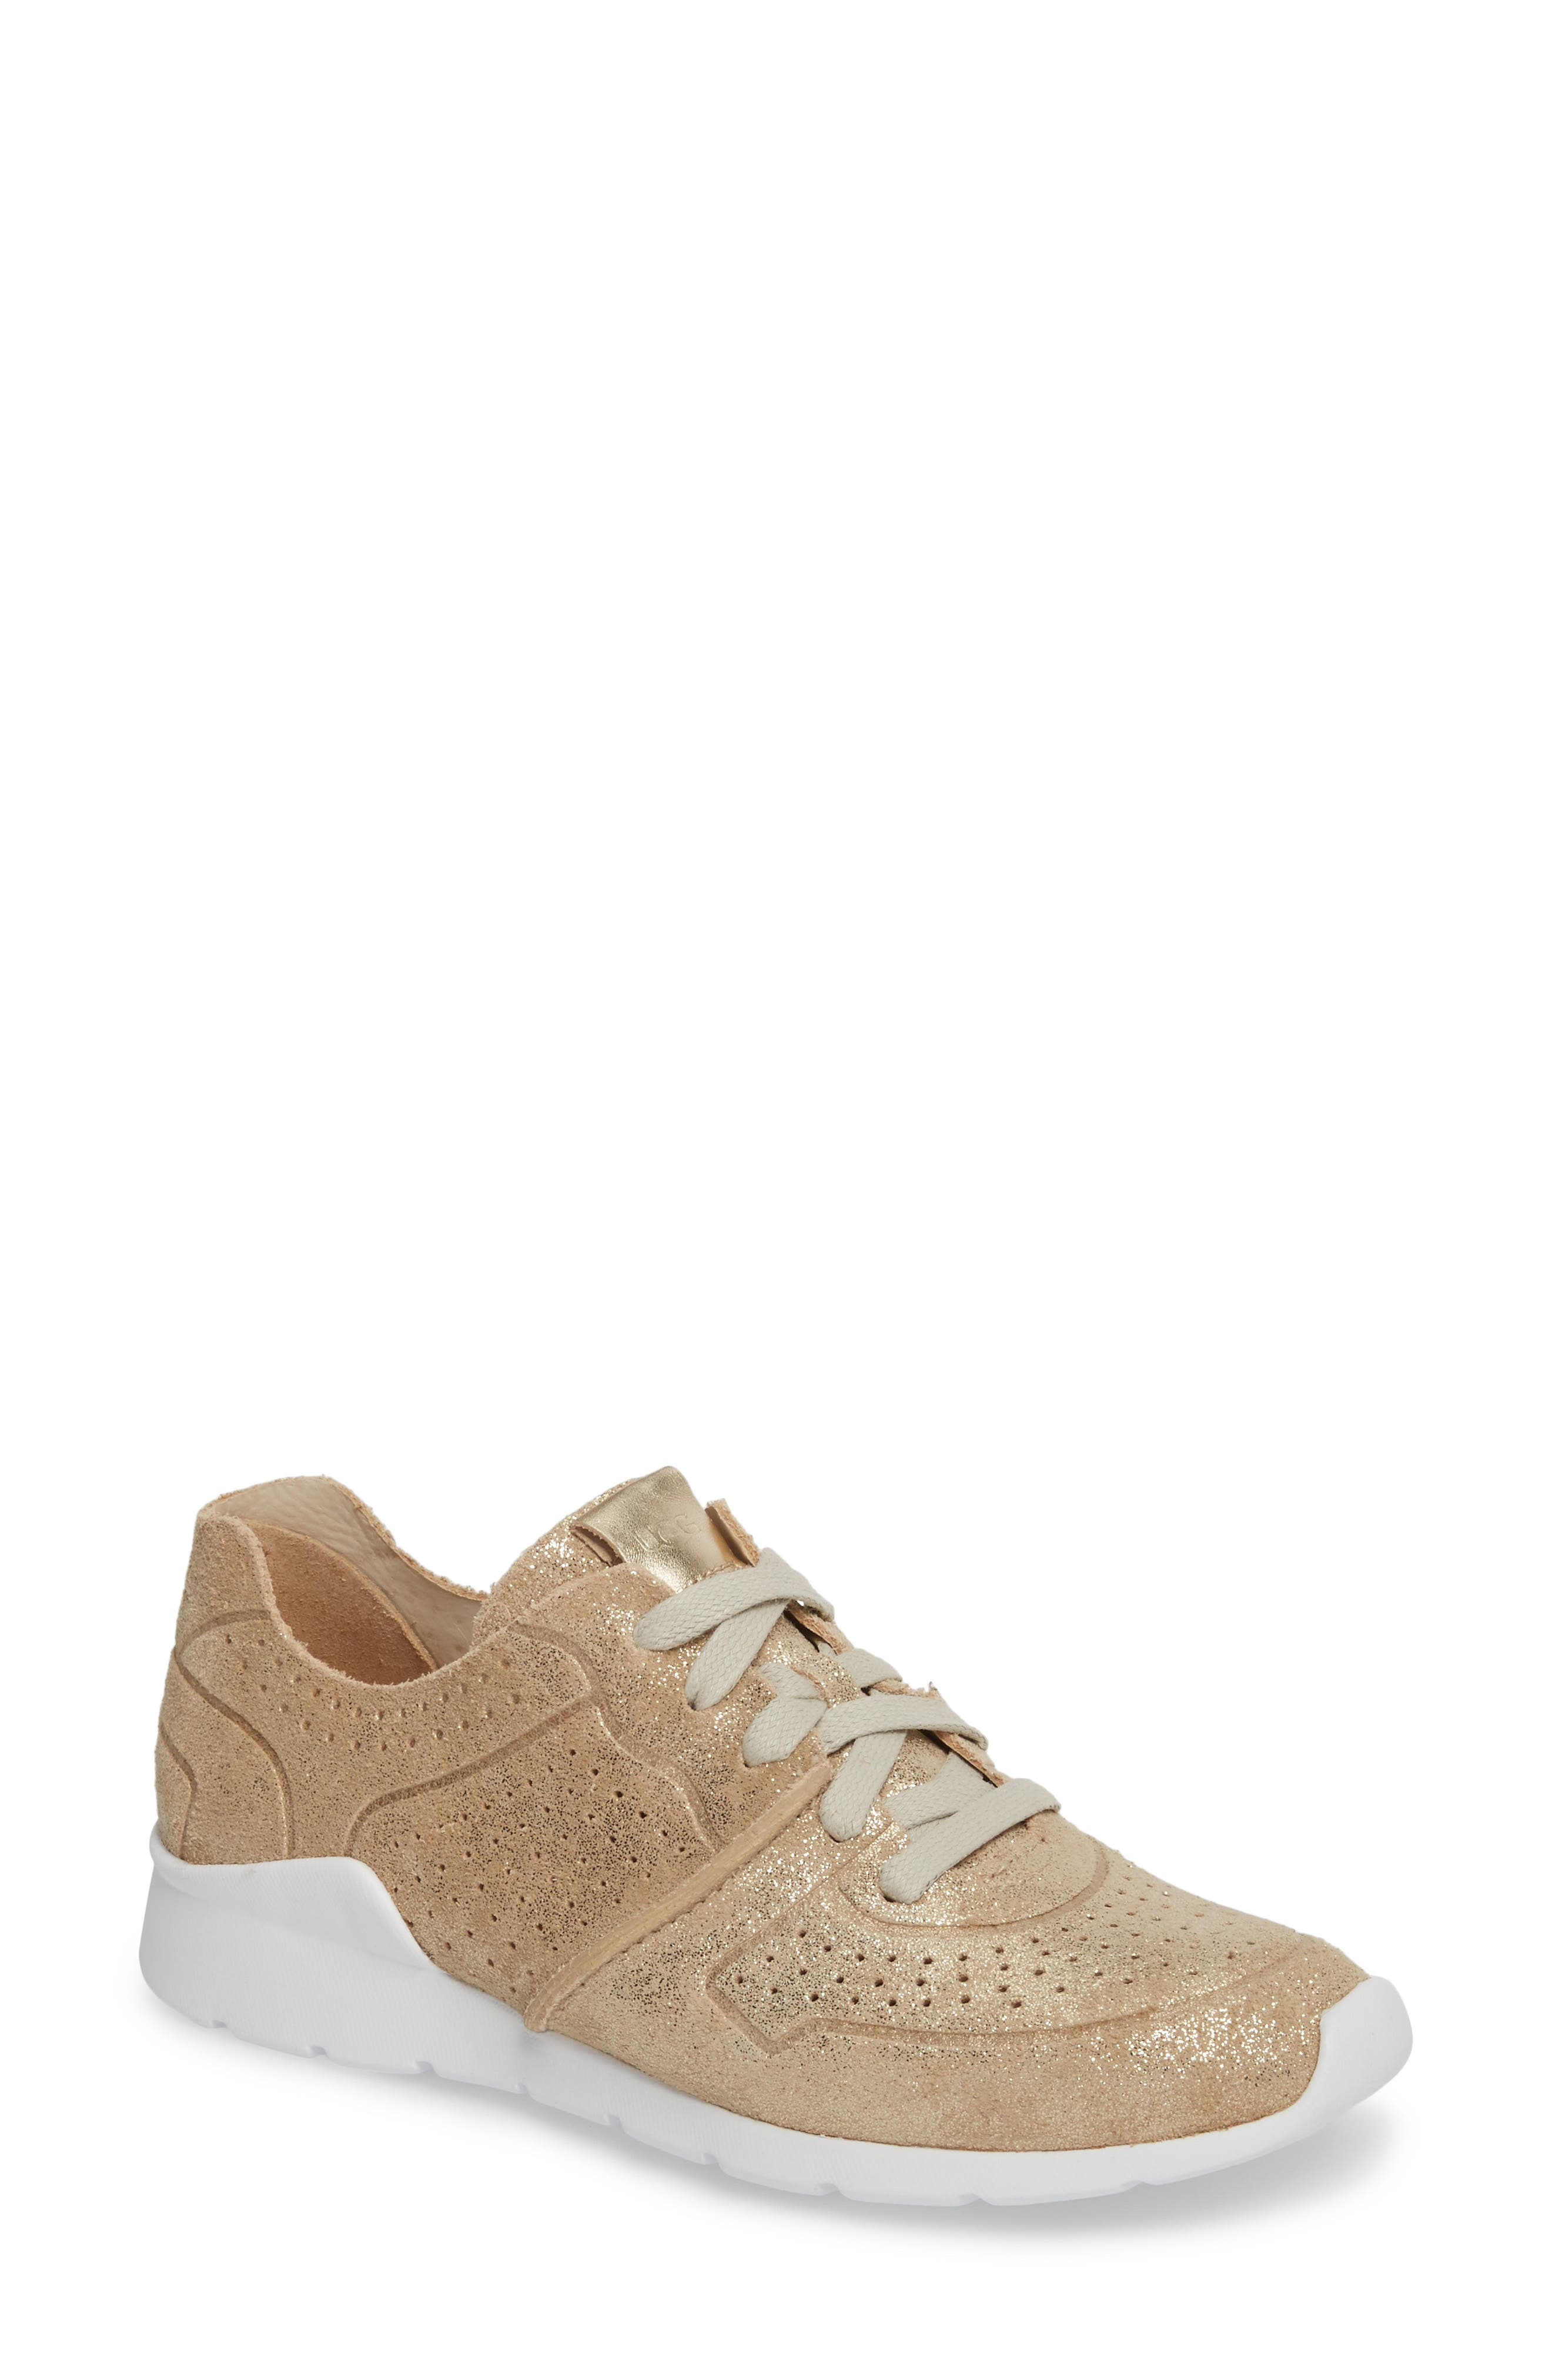 UGG<SUP>®</SUP> Tye Stardust Sneaker, Main, color, GOLD LEATHER